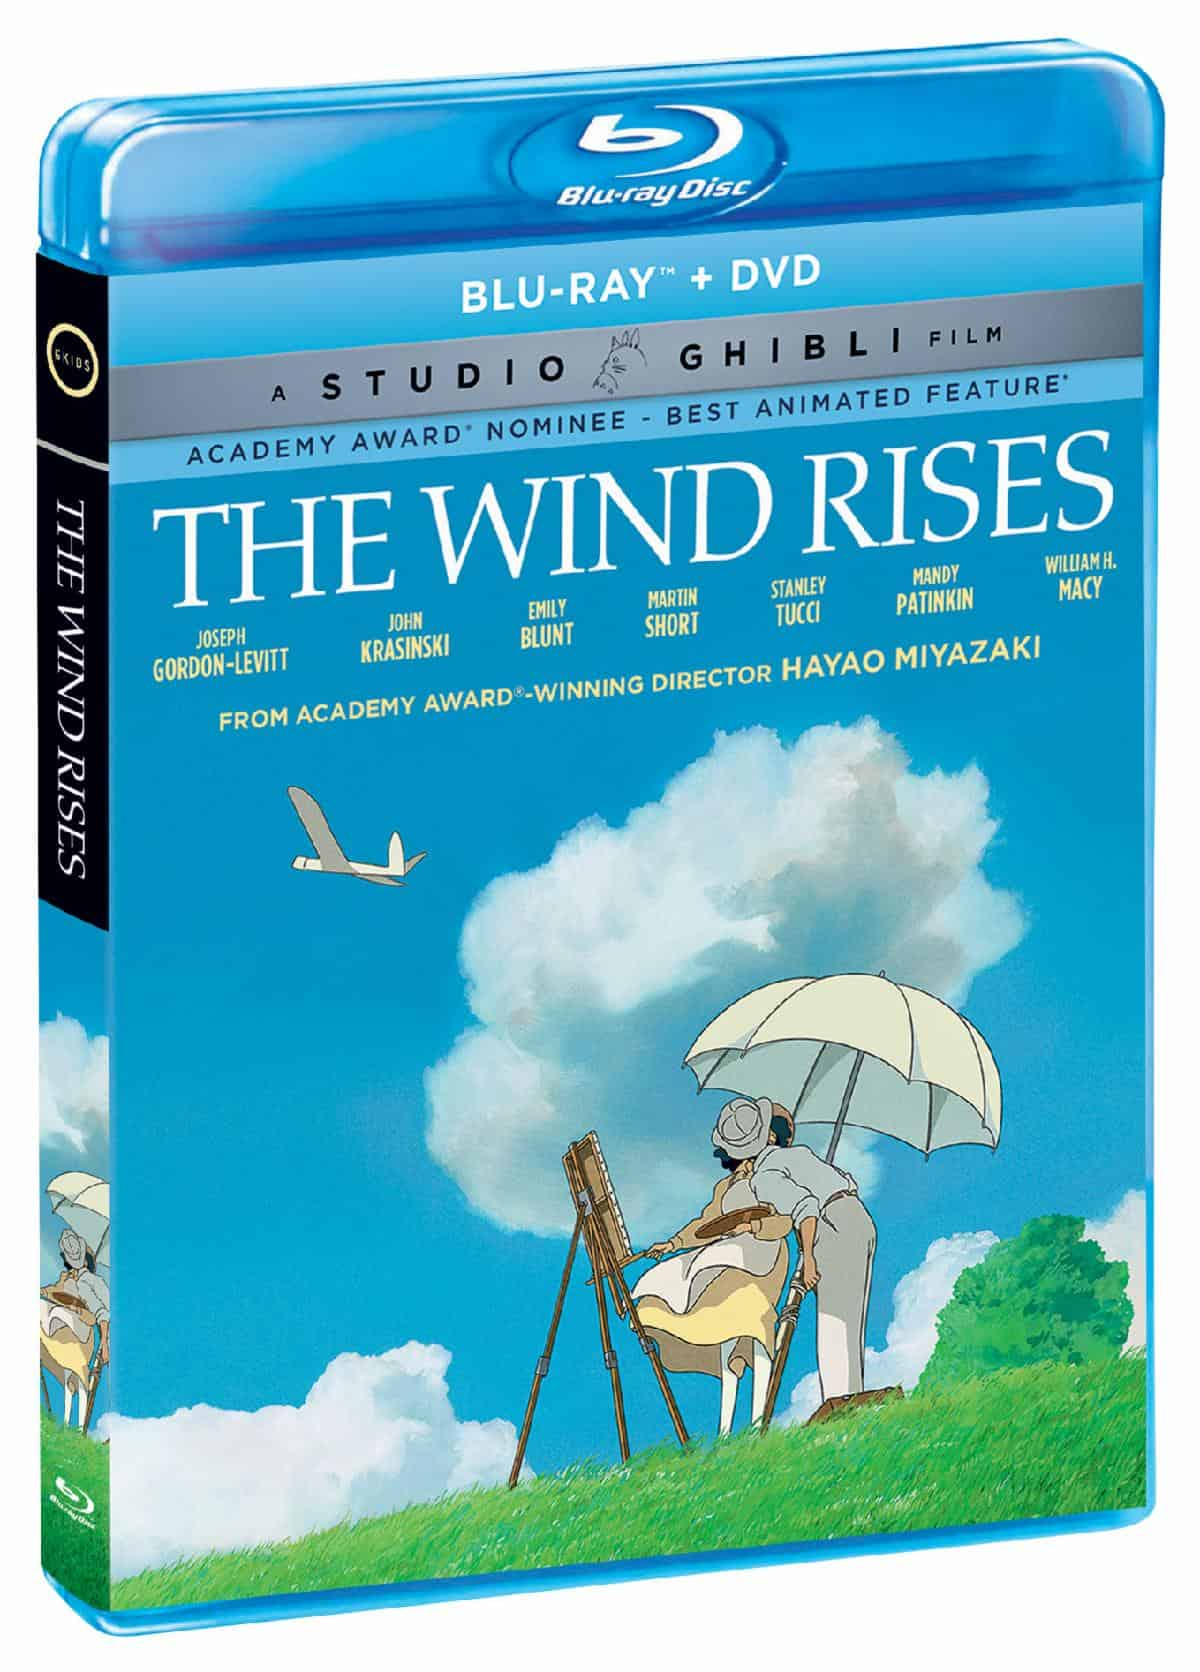 Studio Ghibli Feature 'The Wind Rises' on Blu-ray, DVD and Digital this September from GKIDS, Shout! Factory 2